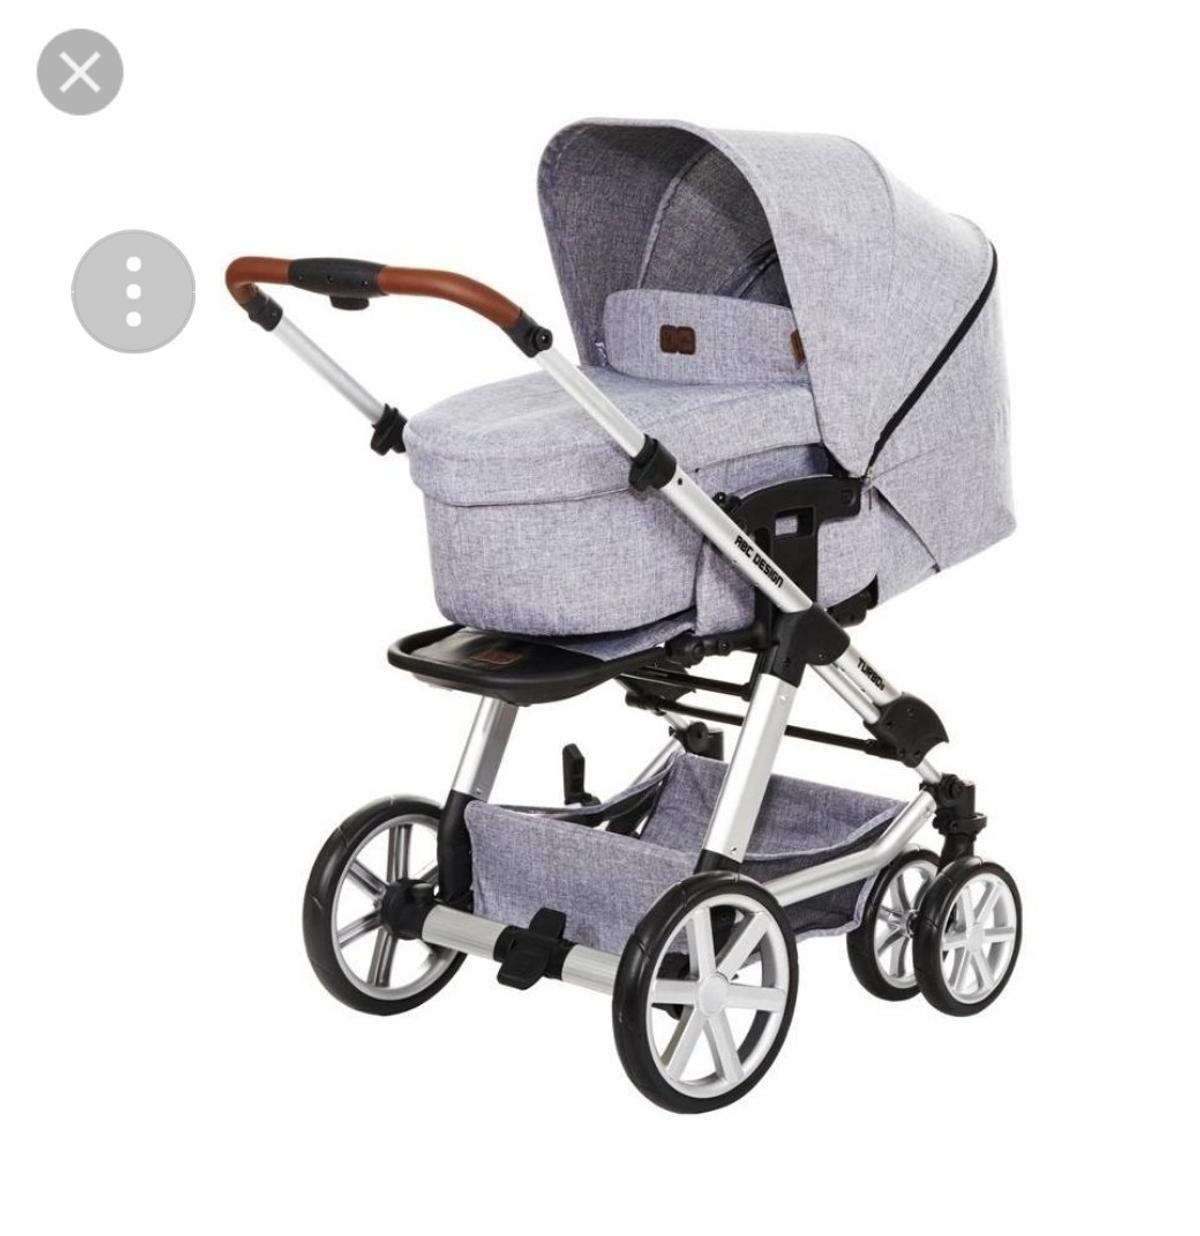 Abc Turbo 6 Zum Buggy Umbauen Abc Kinderwagen Turbo 6 In 55442 Stromberg For 300 00 For